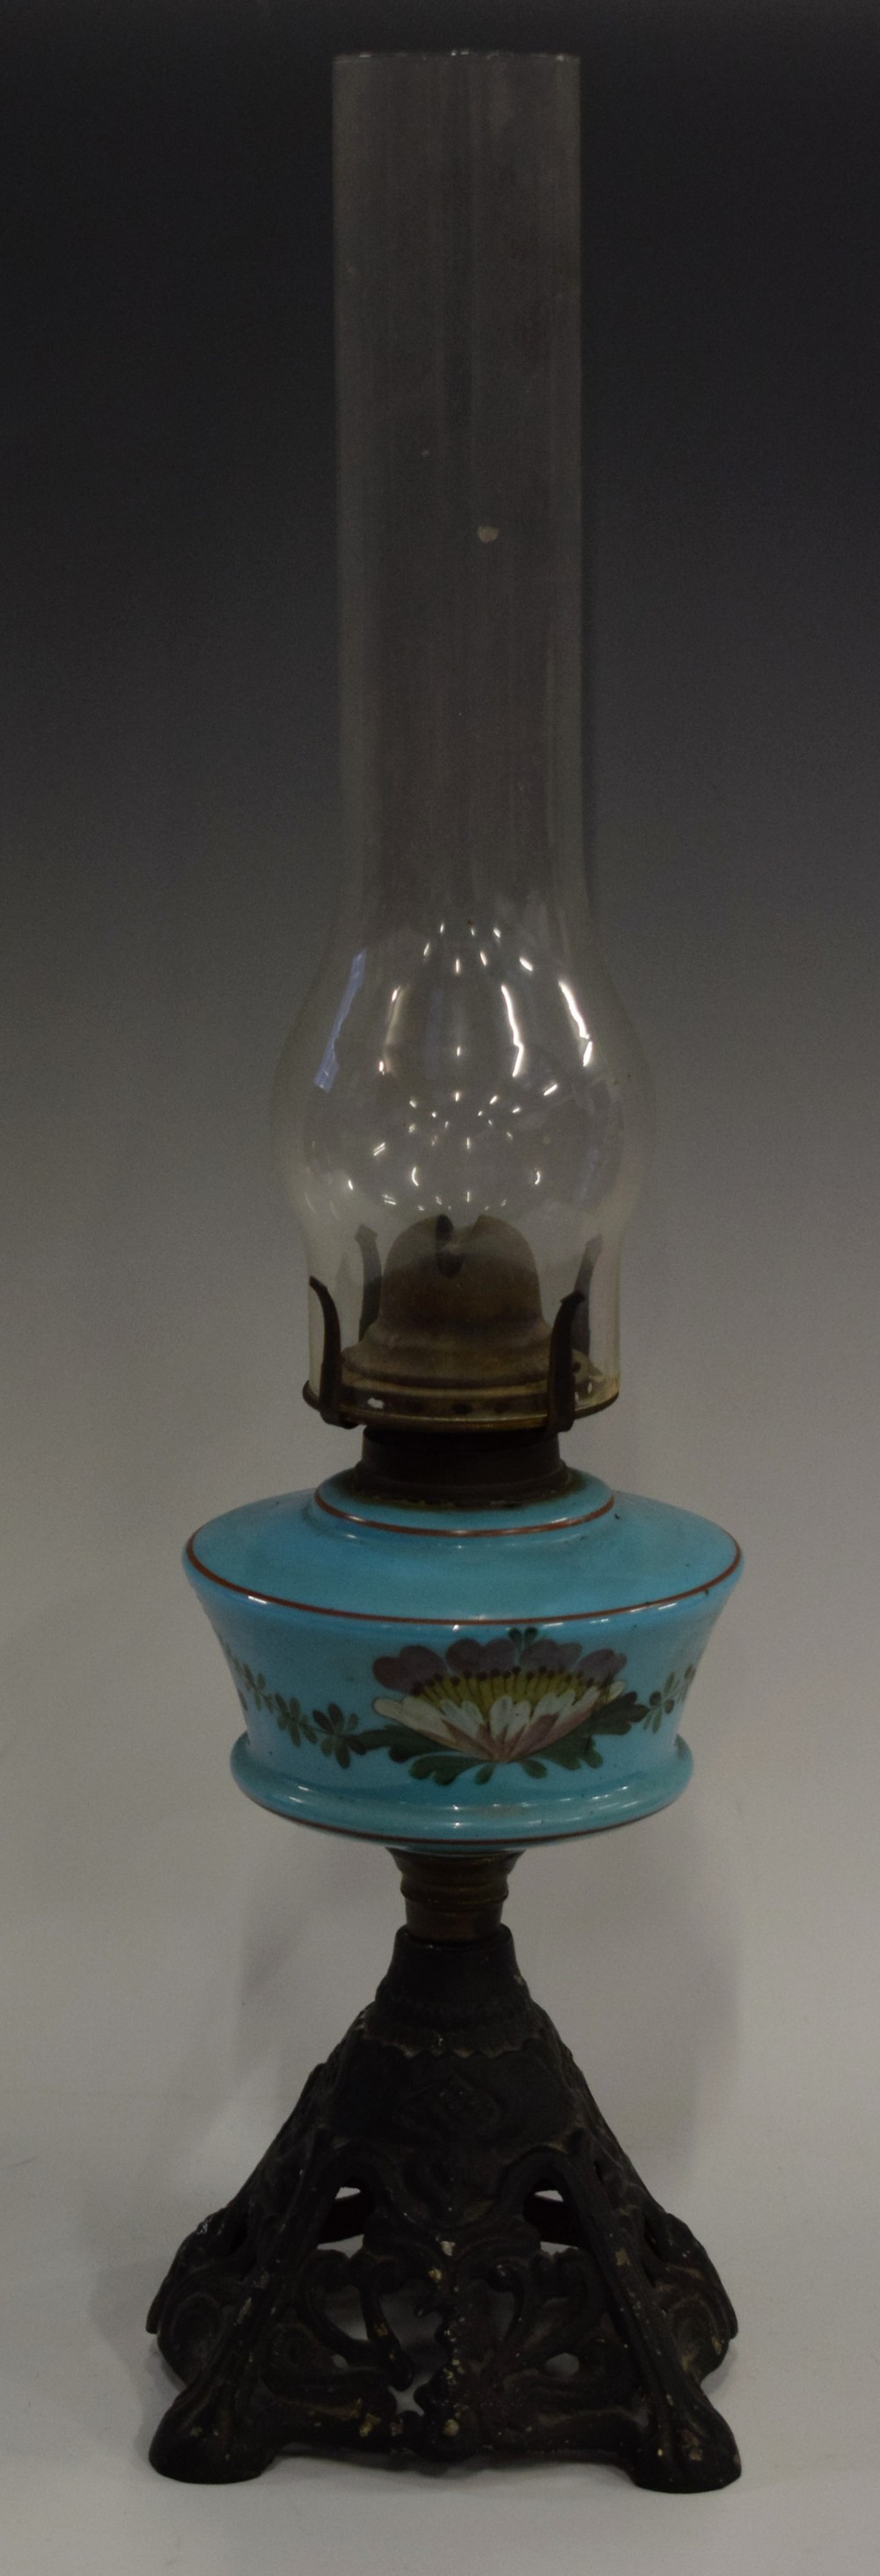 Lot 24 - A Victorian blue milk glass and enamelled oil lamp